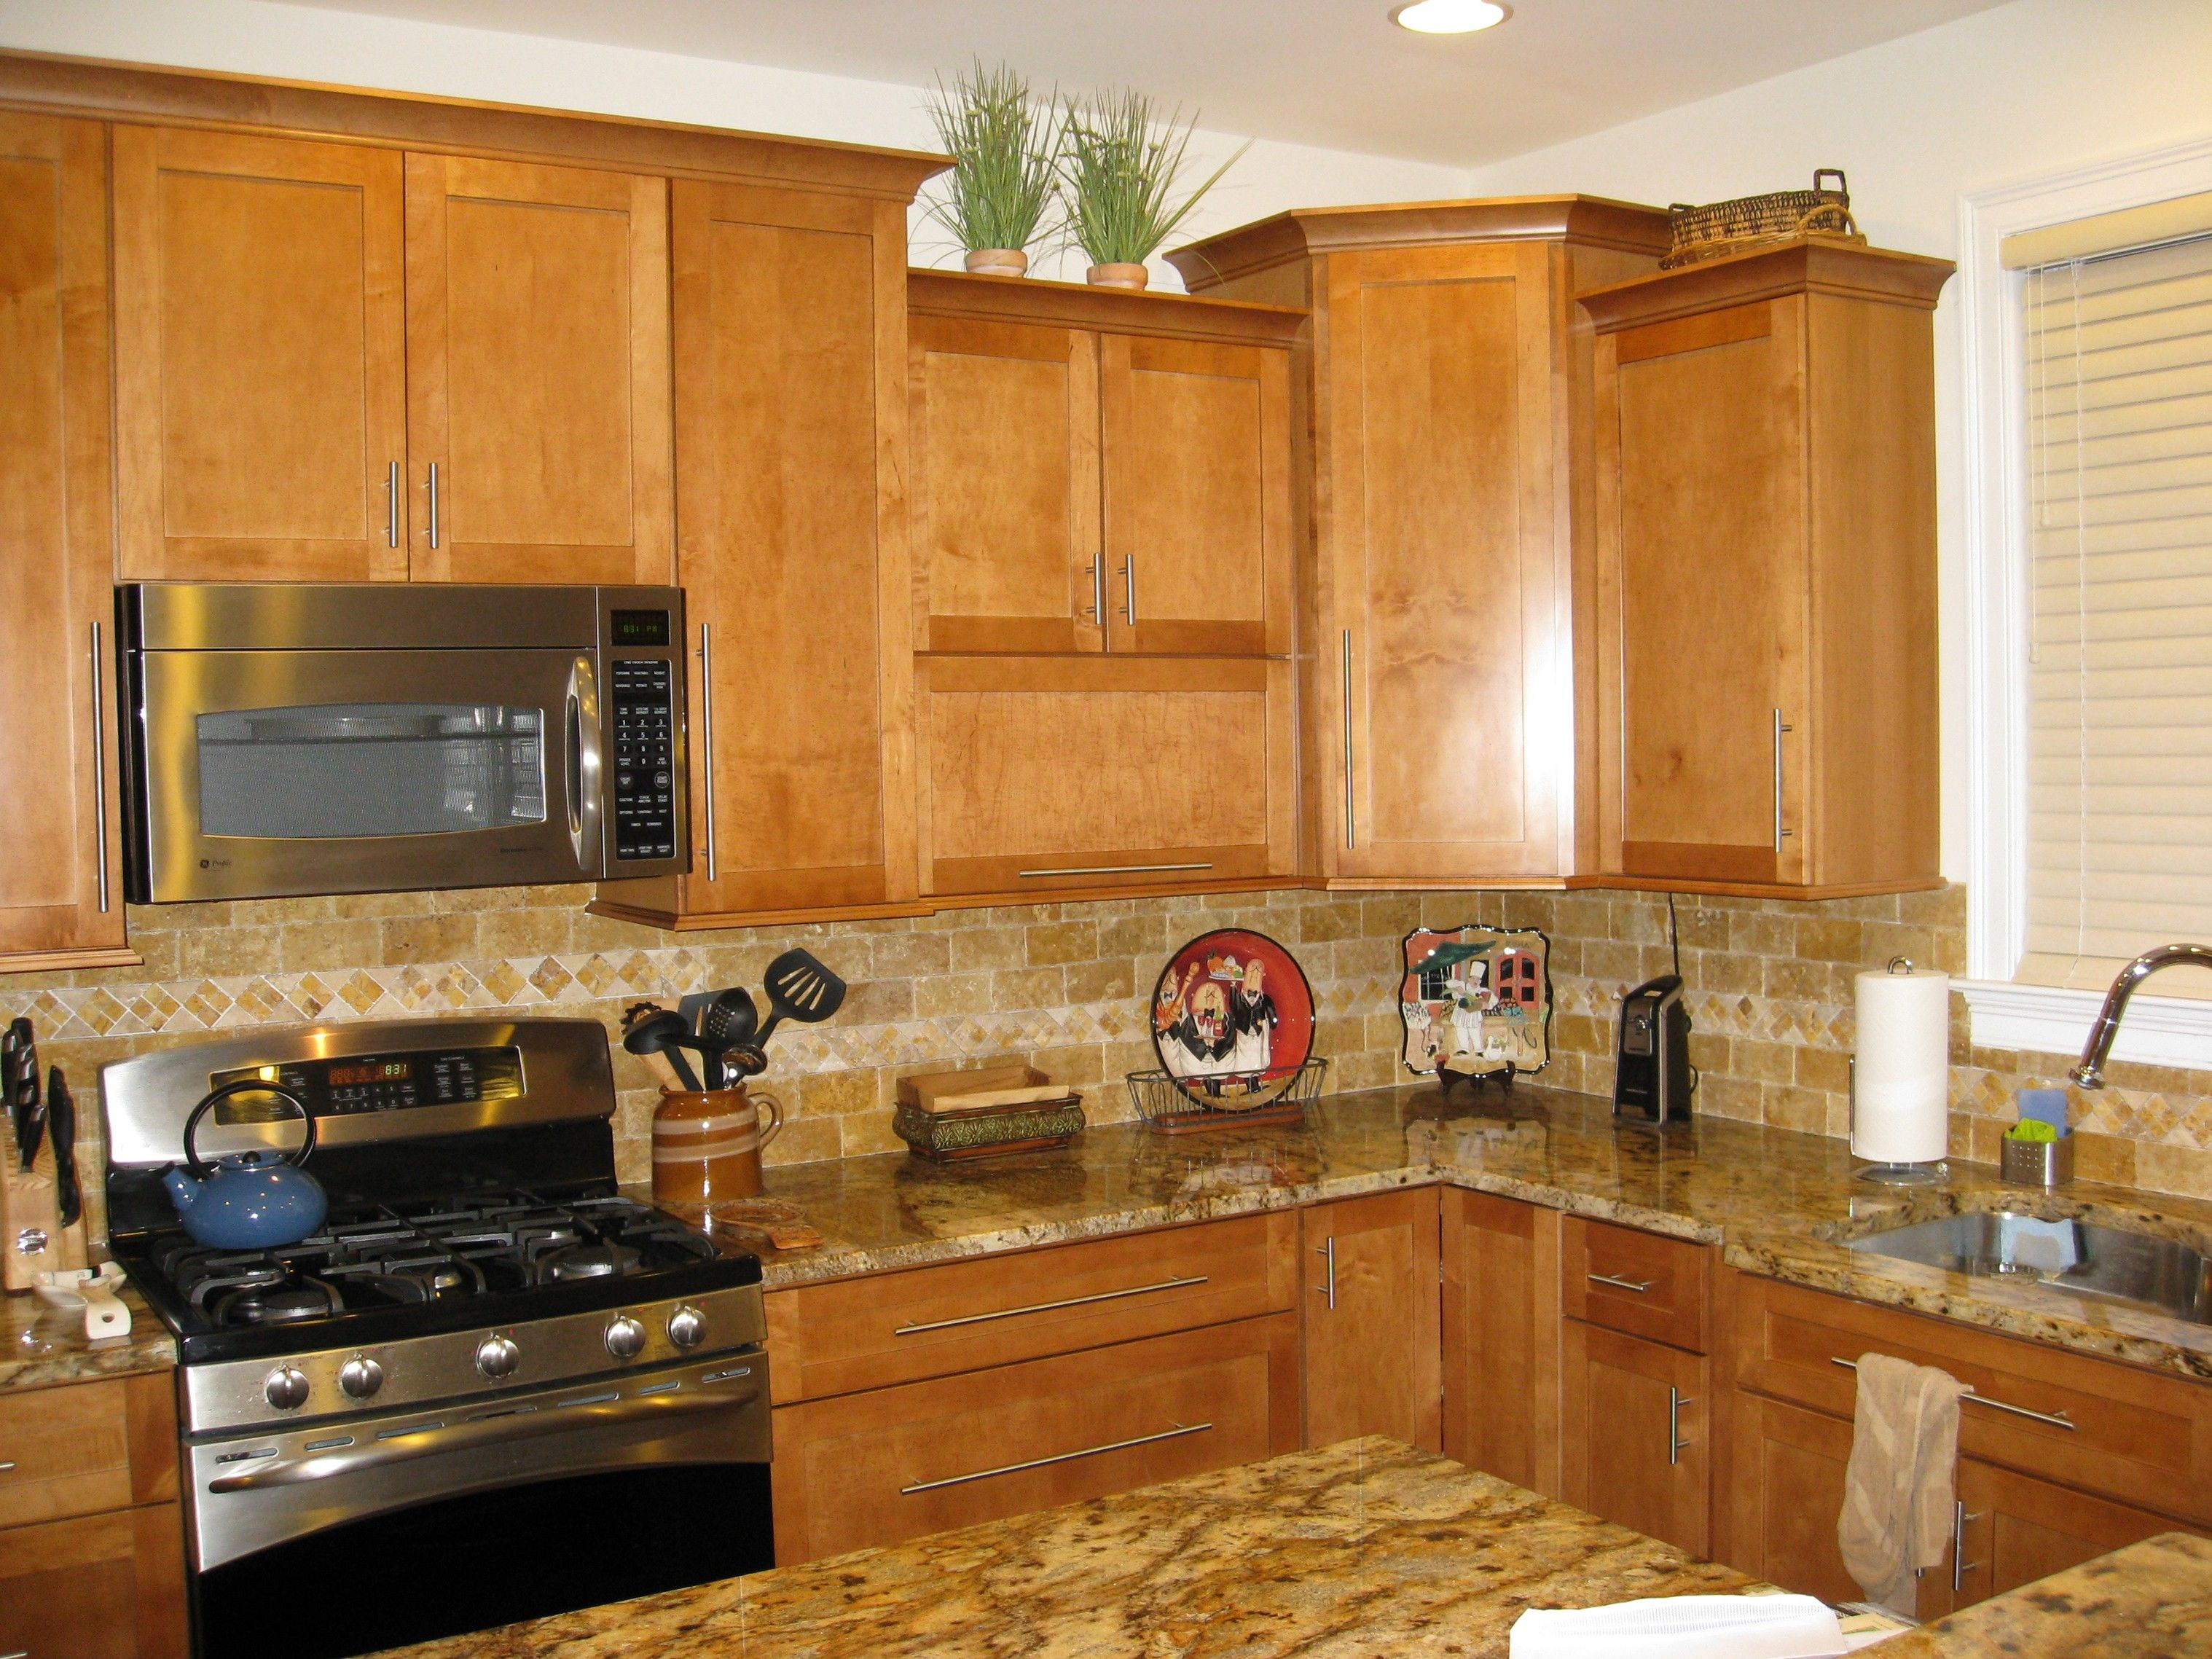 New Venetian Gold Granite Backsplash Ideas Part - 47: Image Result For Light Maple Cabinets With New Venetian Gold Granite · Backsplash  Ideas ...